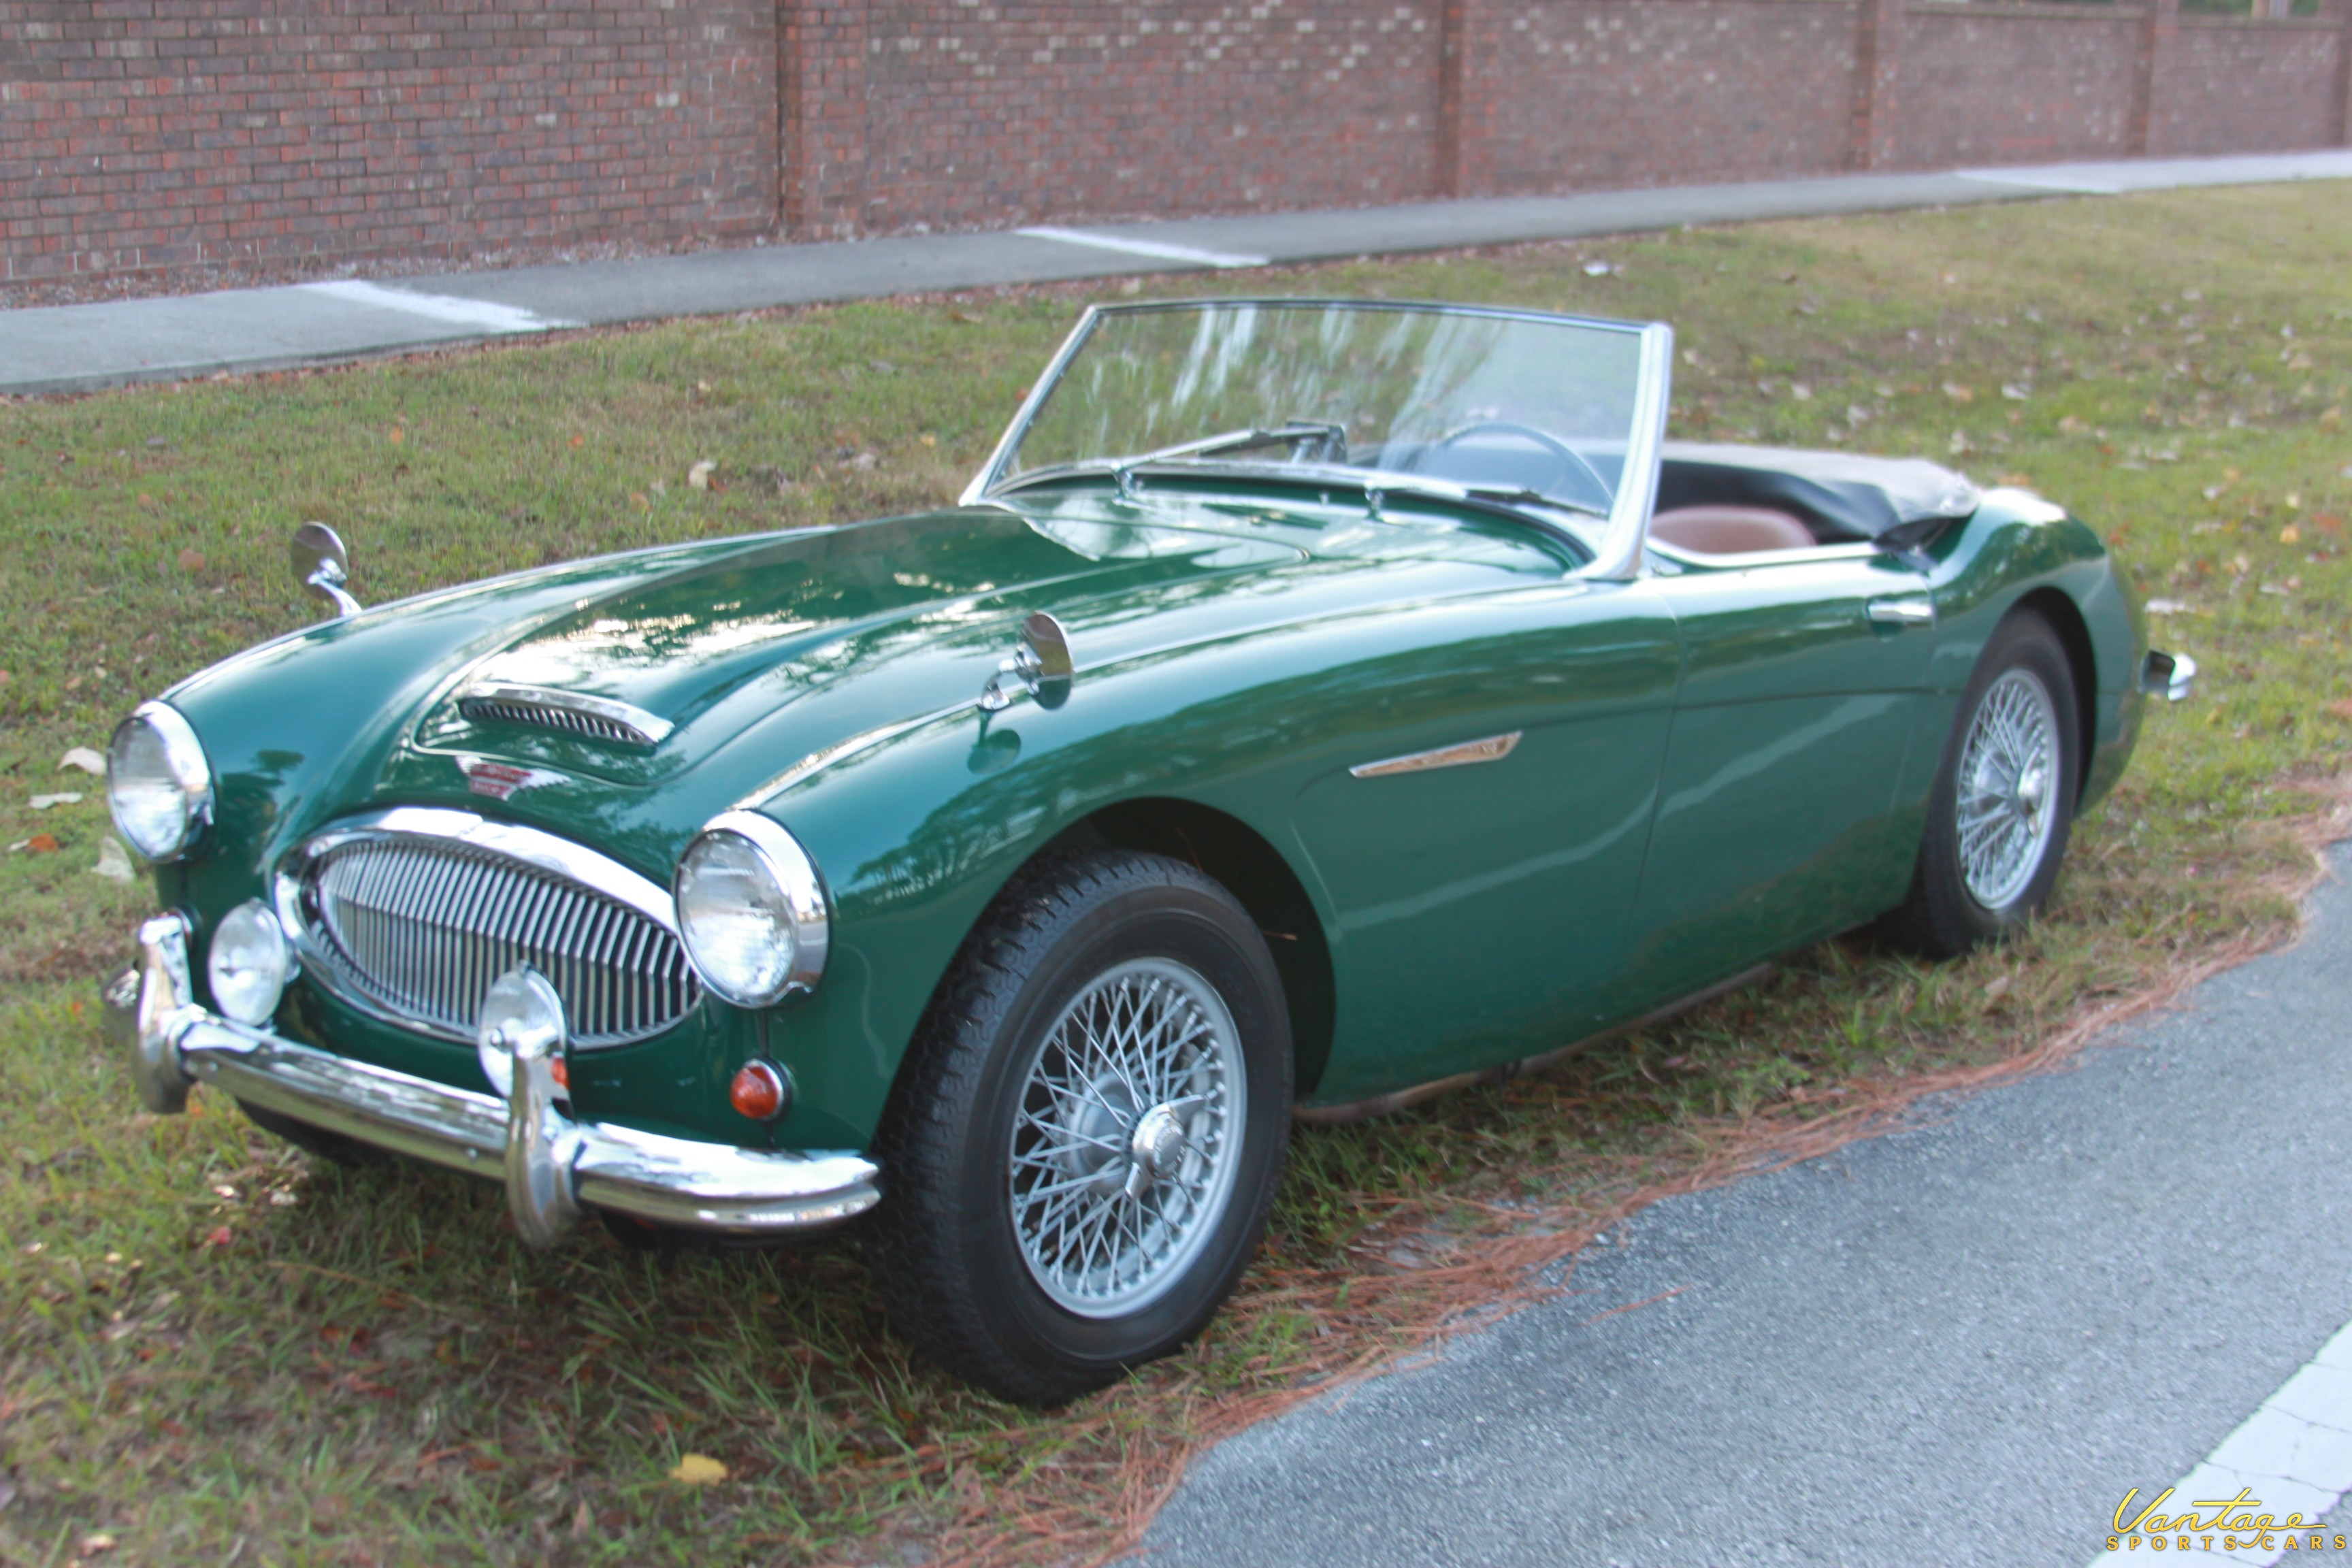 1961 Austin Healey 3000 Mk I  SOLD    Vantage Sports Cars   Vantage     1961 Austin Healey 3000 Mk I  SOLD